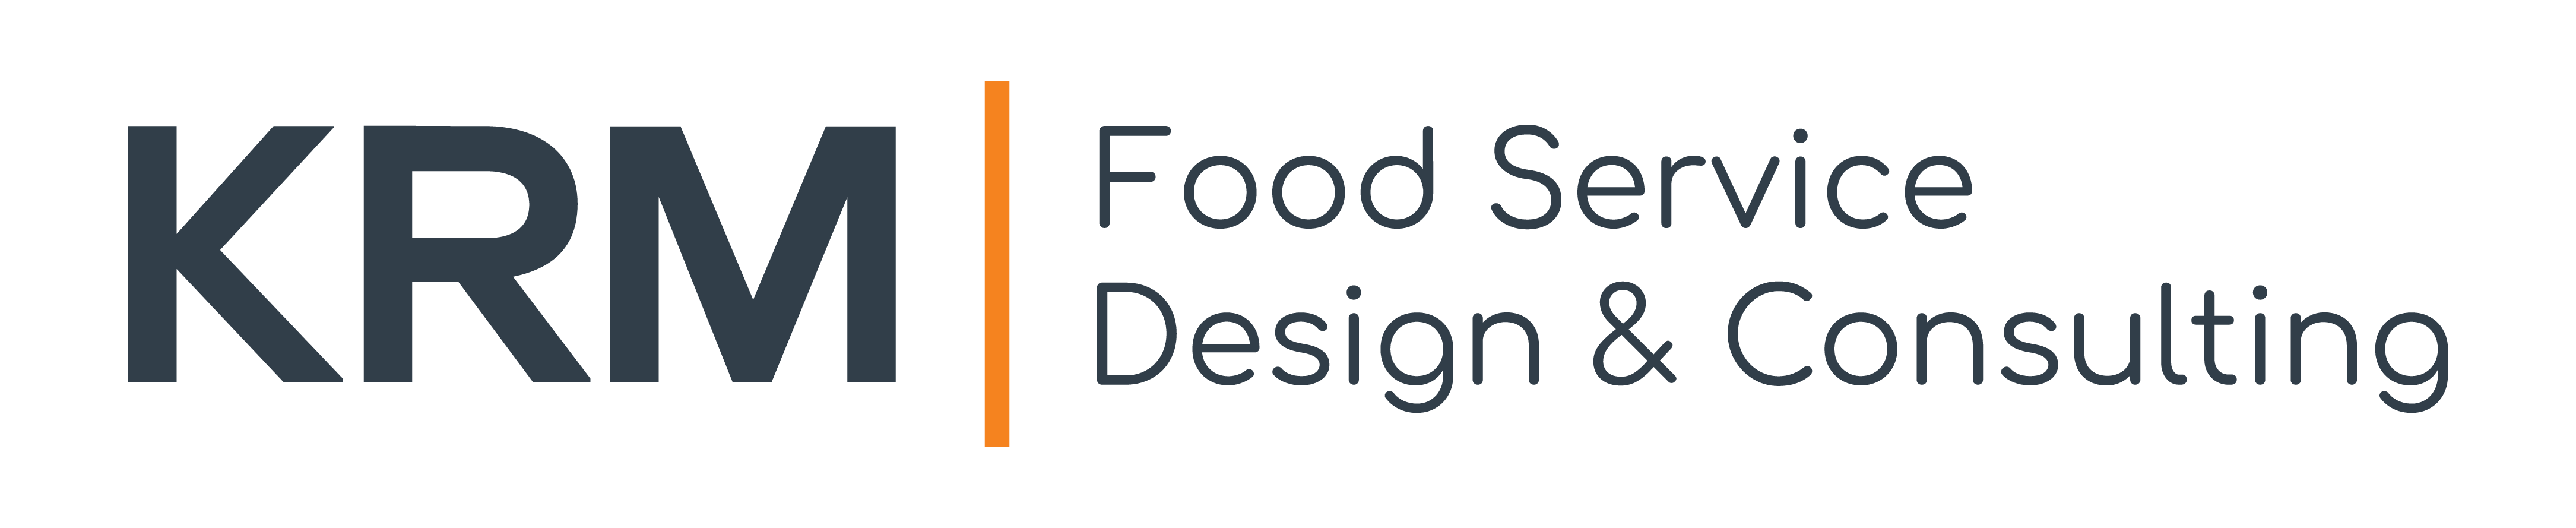 KRM Food Services & Design Consulting